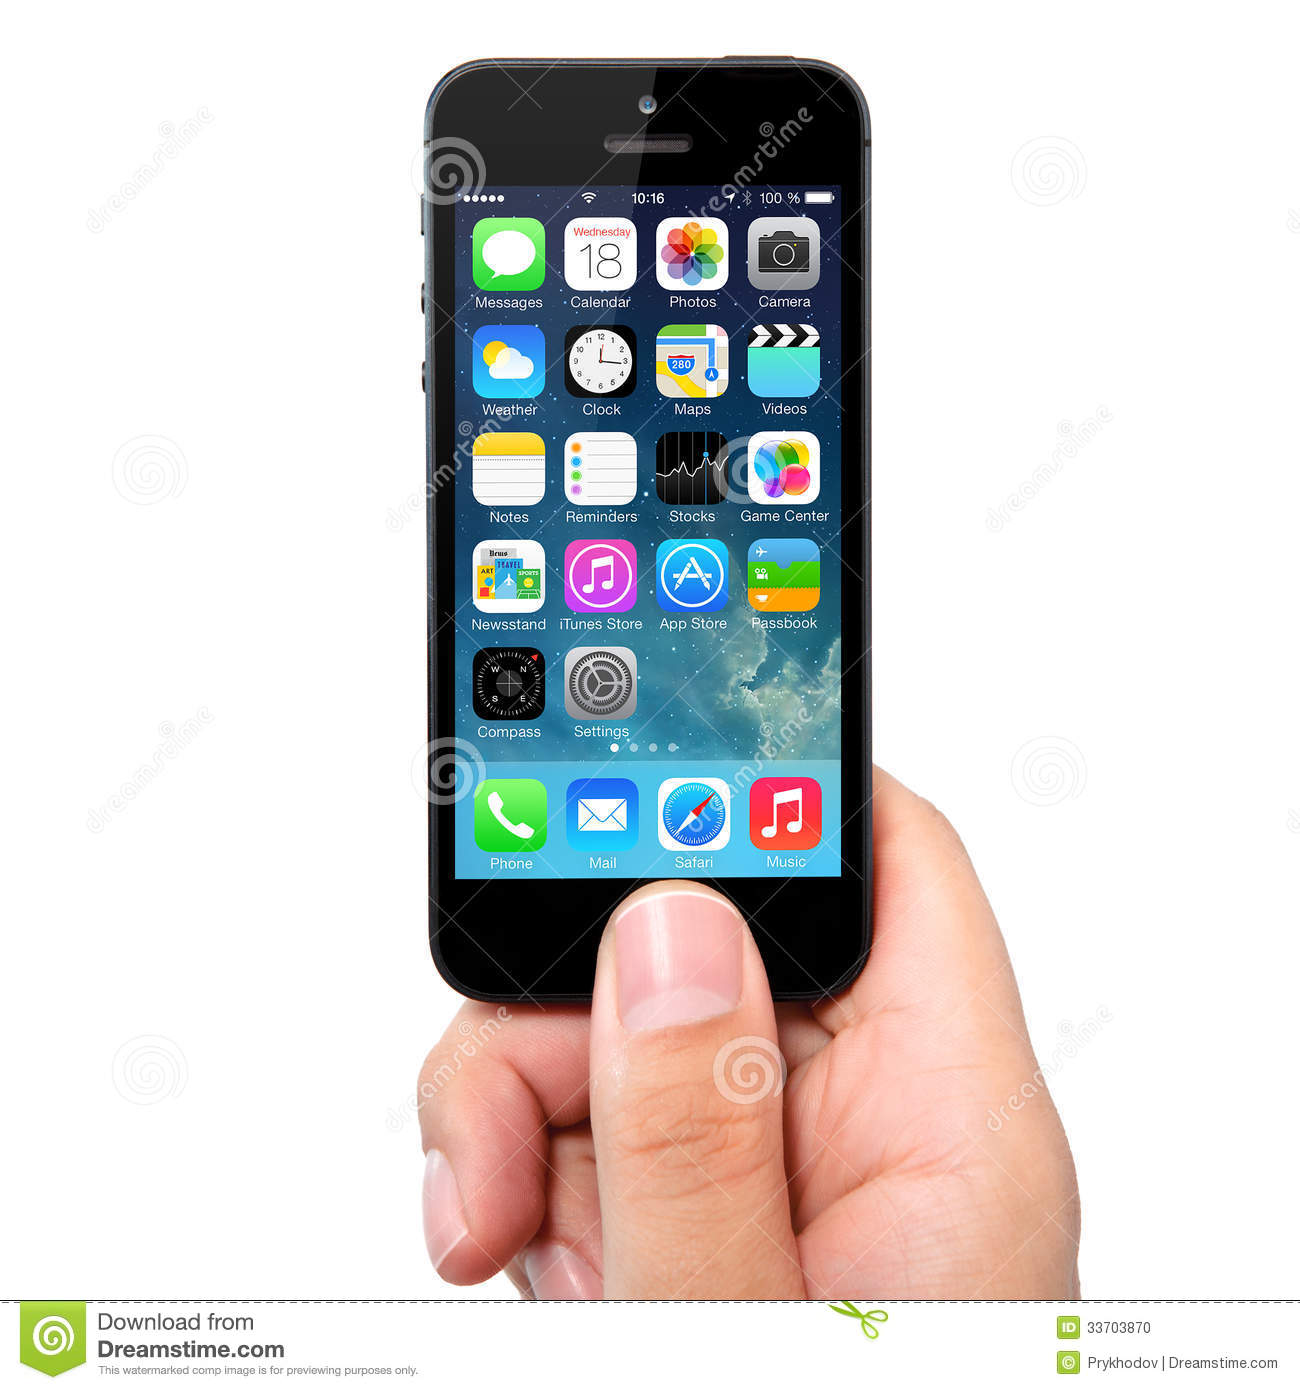 iphone operating system new operating system ios 7 screen on iphone 5 apple 8260